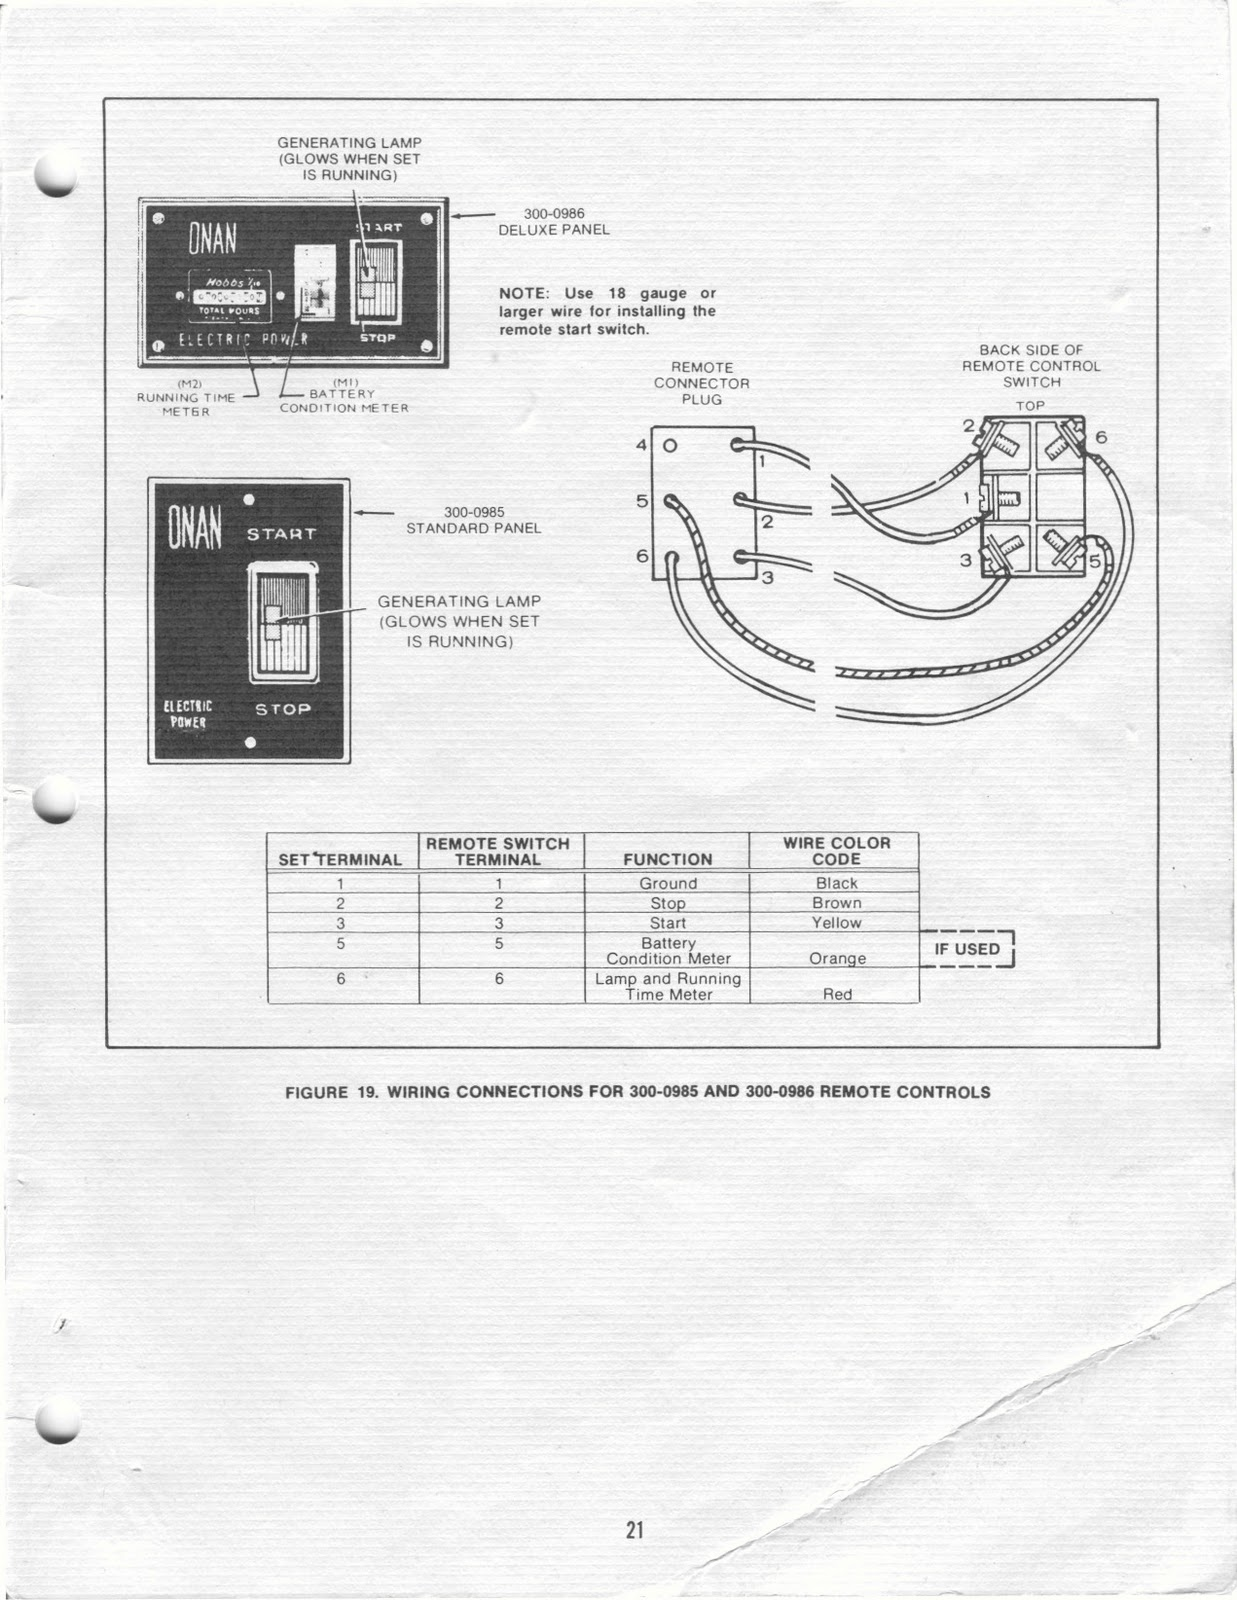 Onan 4 0 Bfa Wiring Diagram Free Download Rv Generator Schematics Nice Photos Electrical At